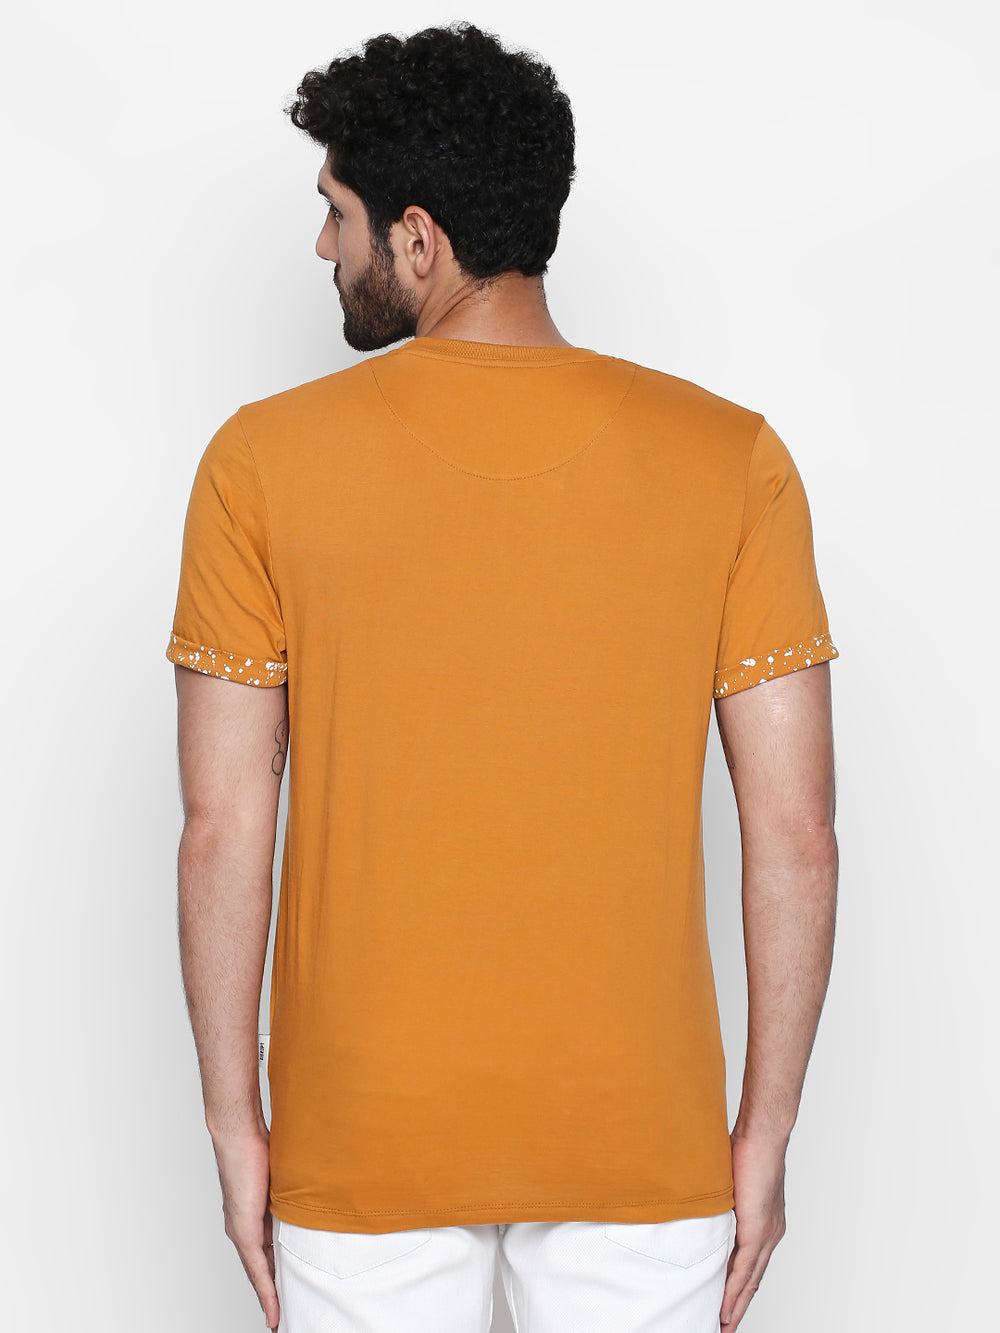 Ochre Knits Cotton Half Sleeve T-Shirt